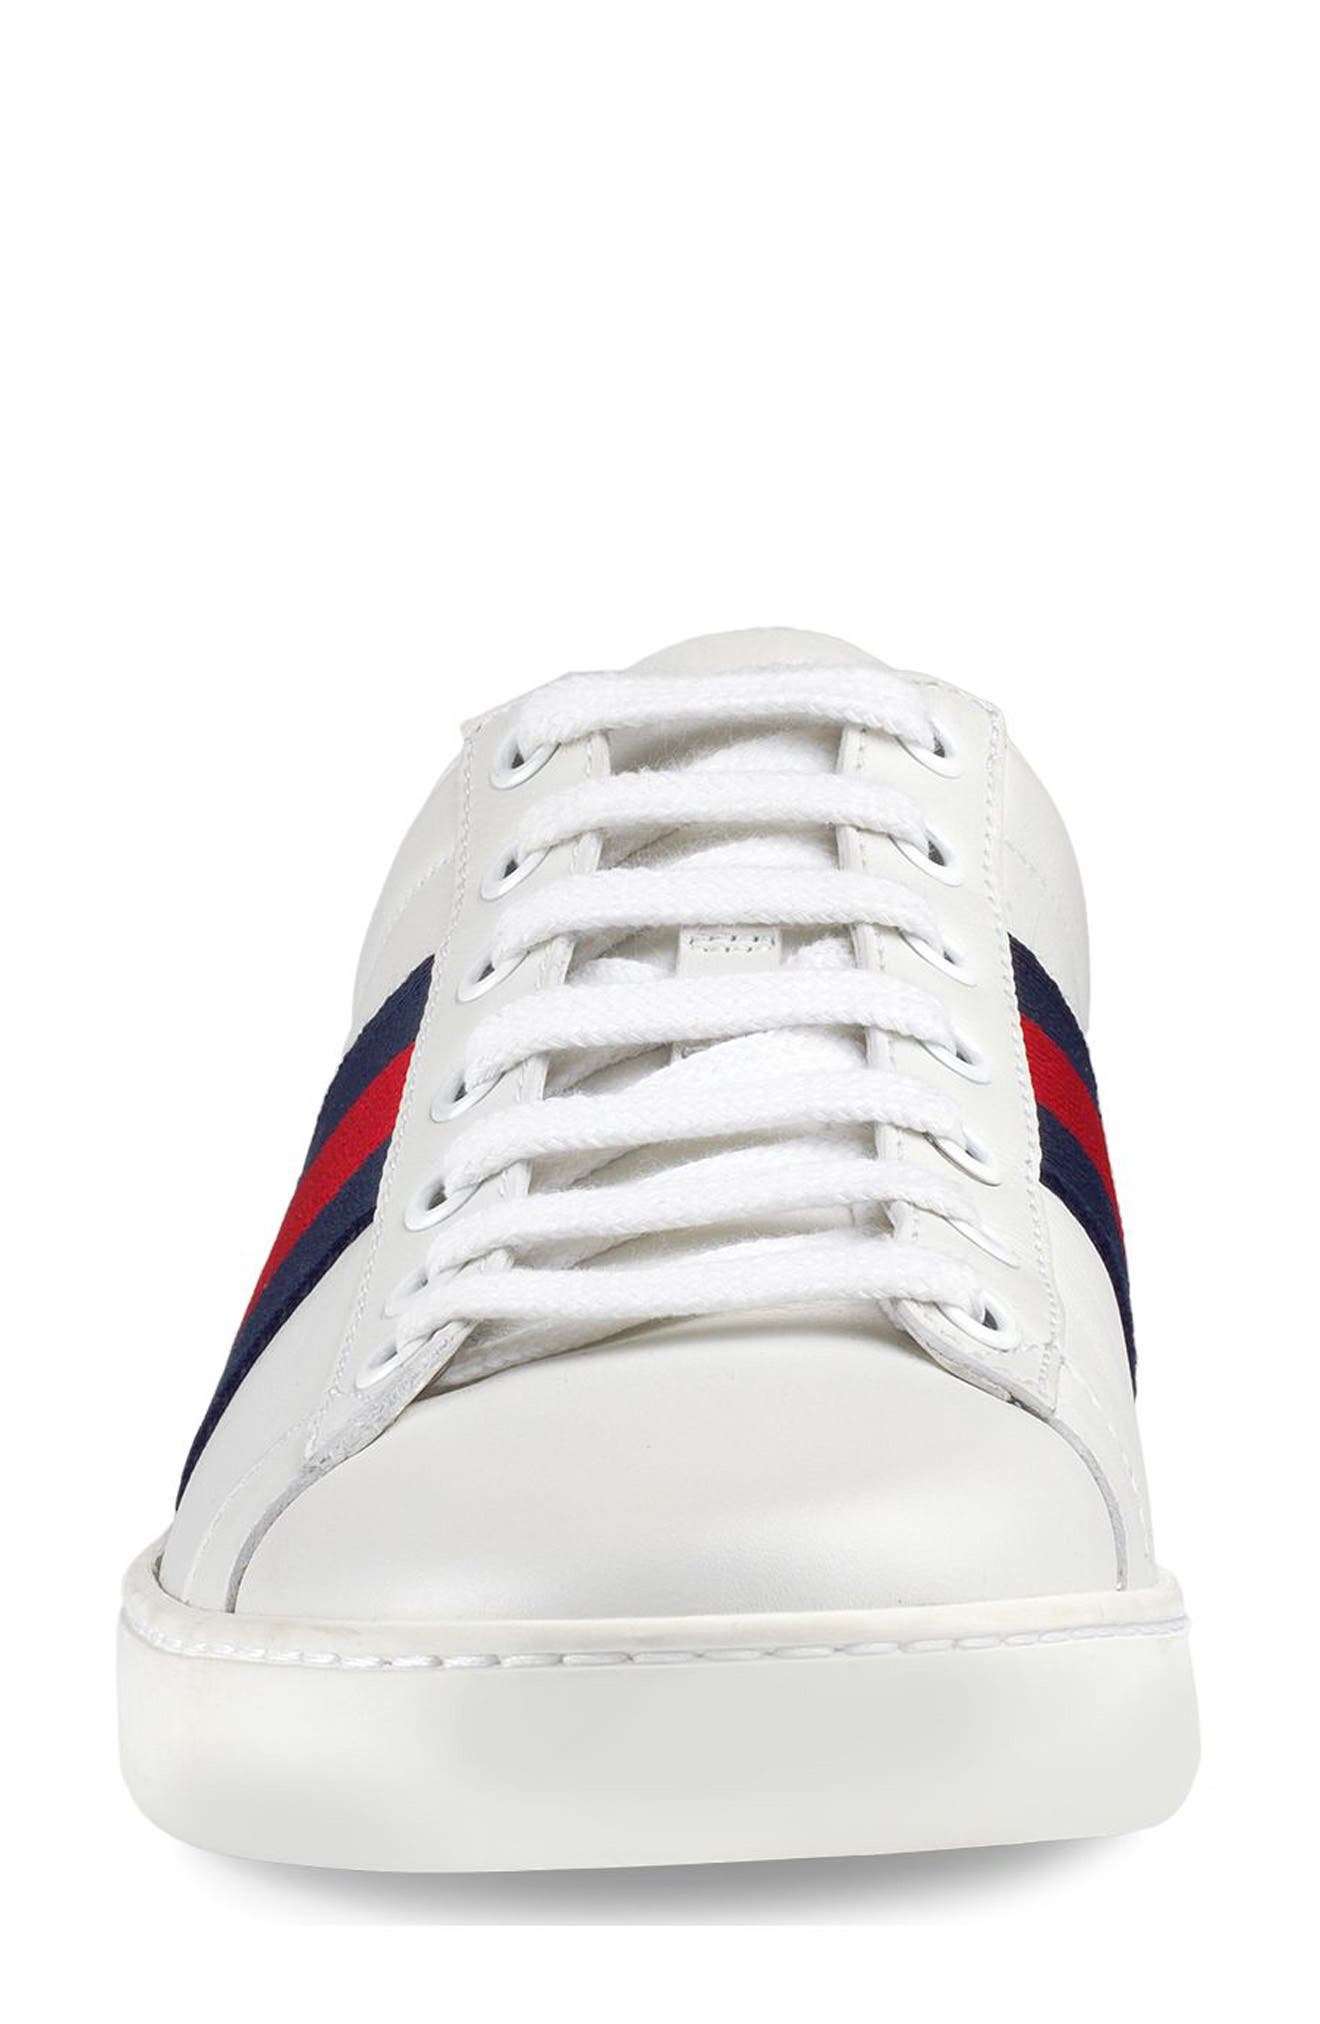 GUCCI, 'New Ace' Sneaker, Alternate thumbnail 3, color, WHITE/ BLUE